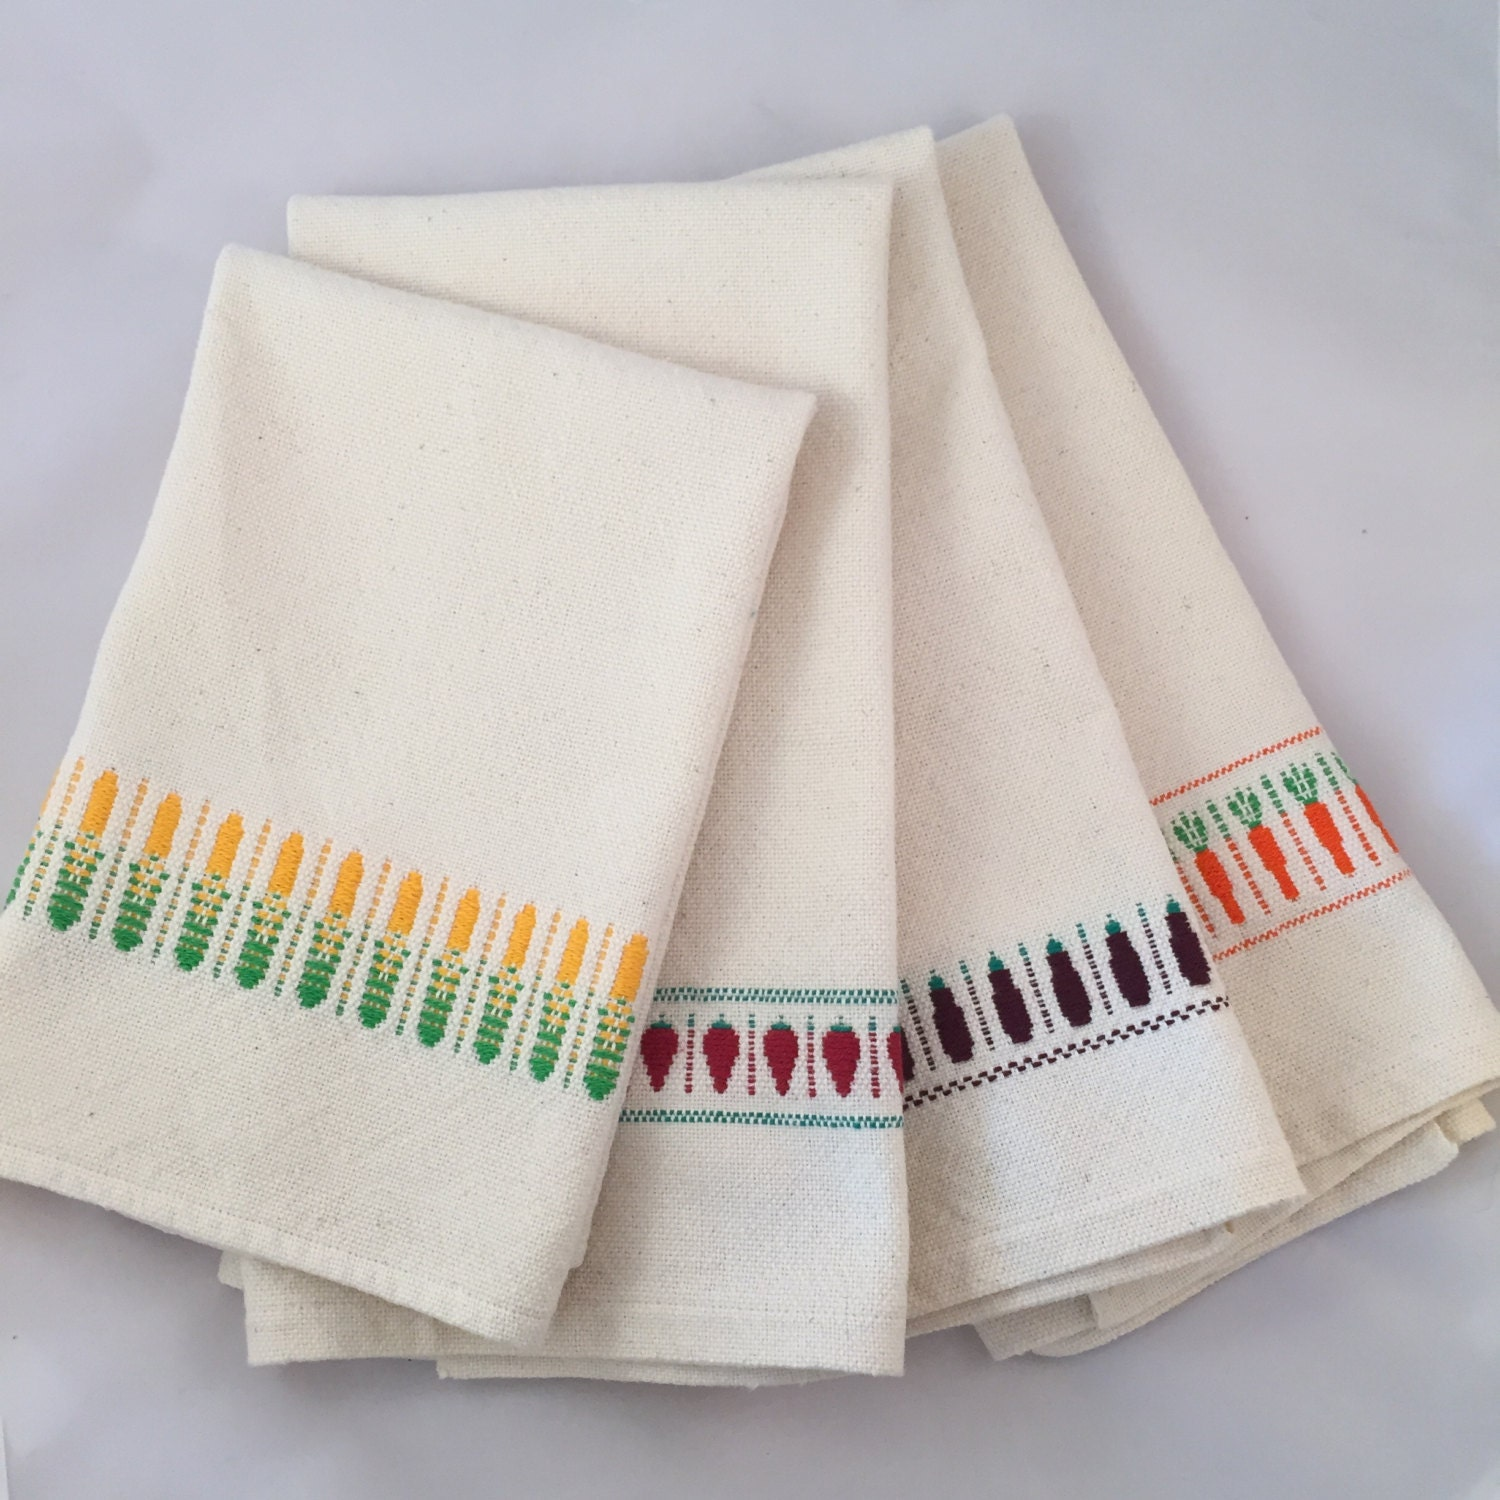 Garden Kitchen Towels. Hand Woven Cotton Dish Towels With